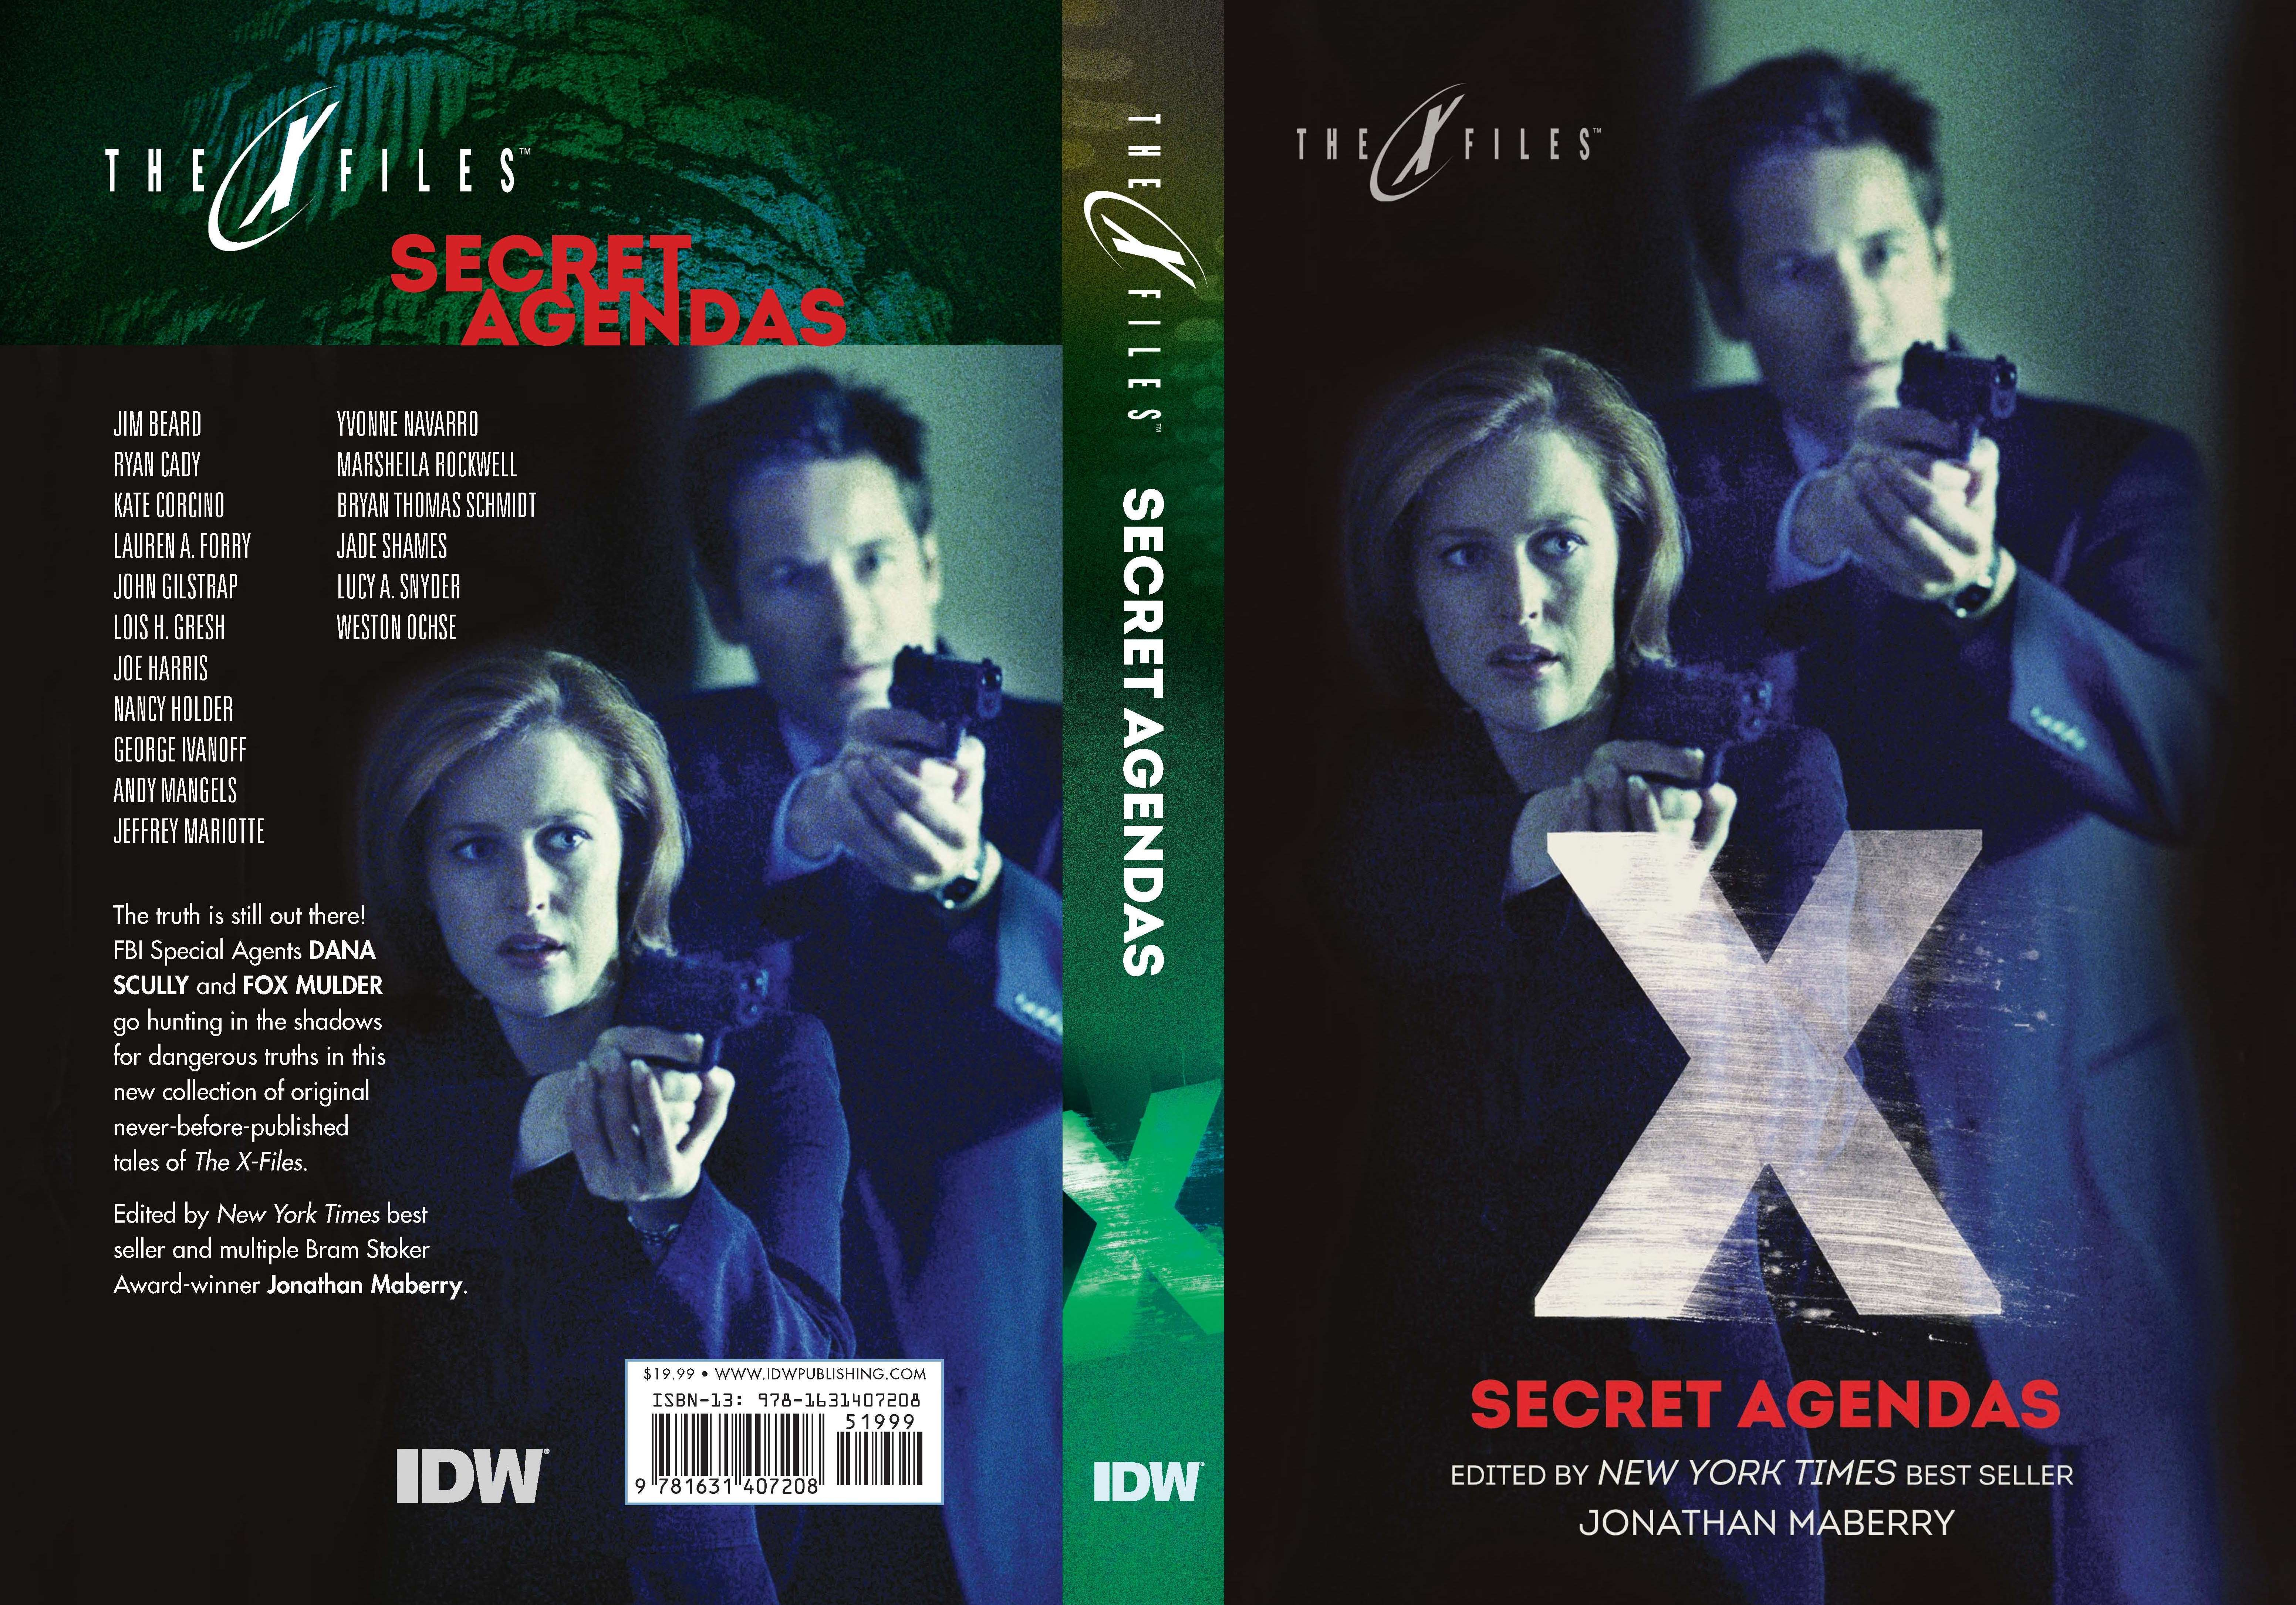 Blog bryan thomas schmidt author and editor x filessecretagendasfullcover fandeluxe Image collections